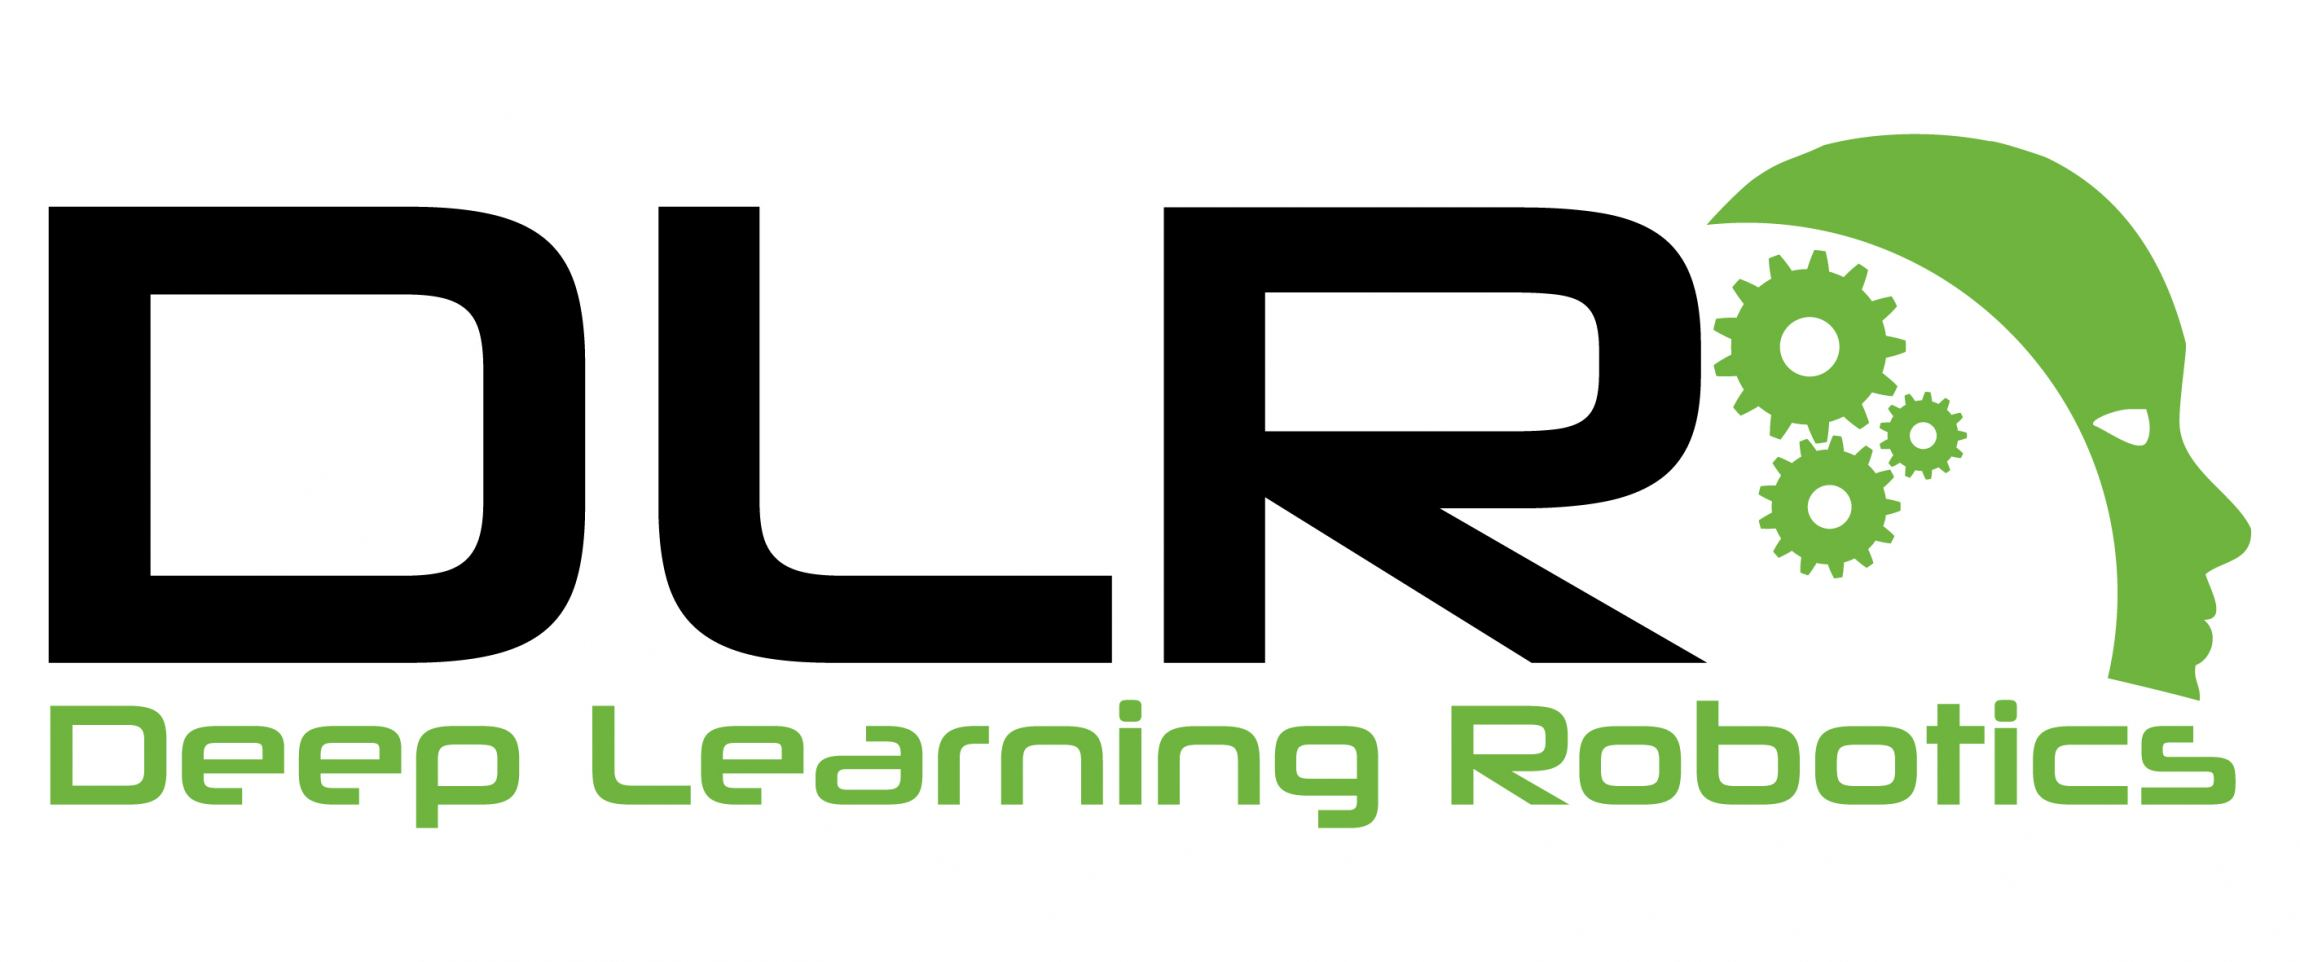 Deep Learning Robotics, Ltd.